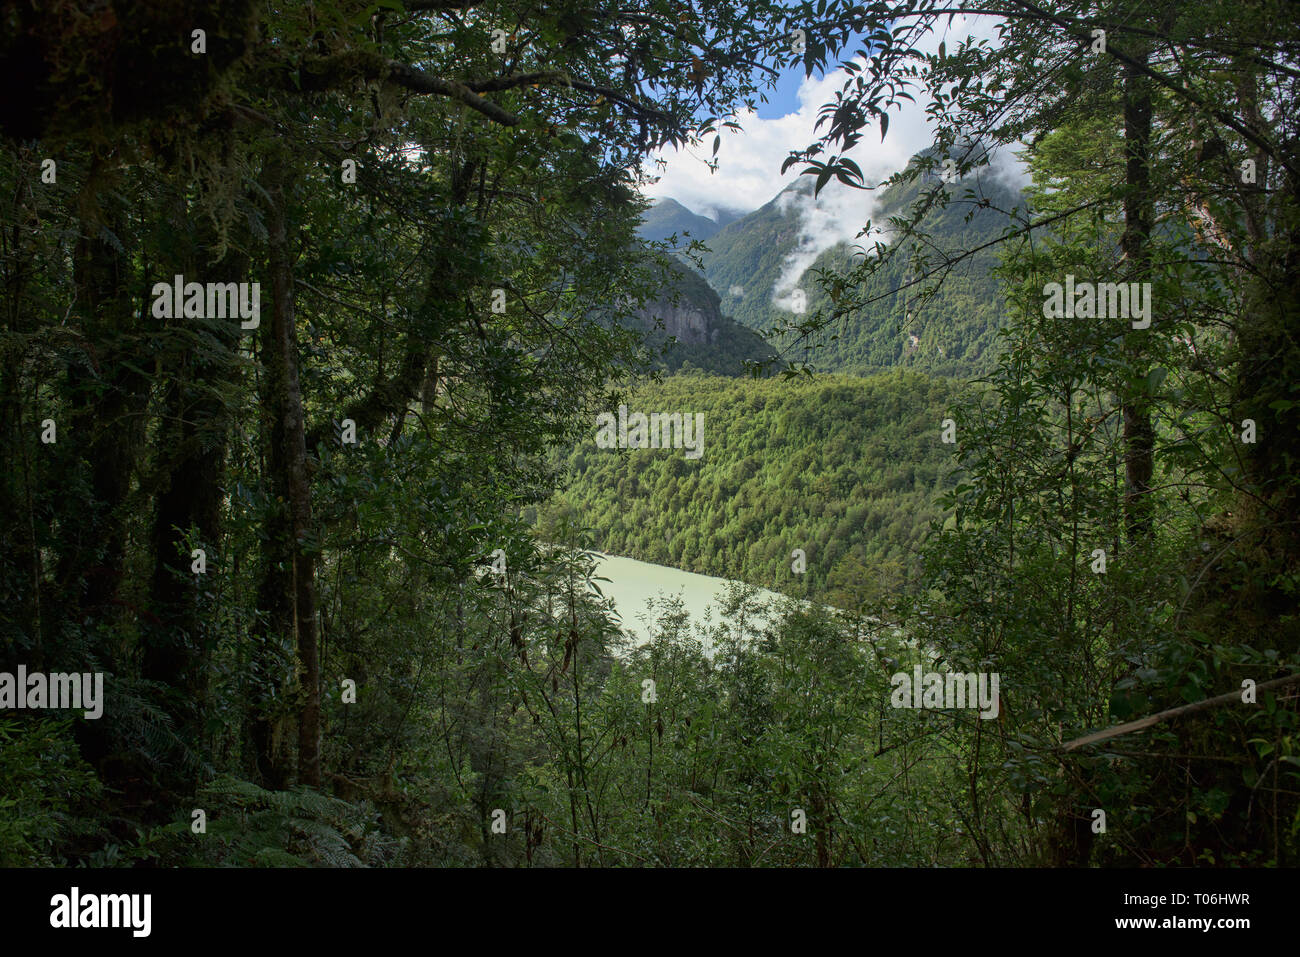 Forest view of Laguna Tempanos in Queulat National Park, Patagonia, Aysen, Chile - Stock Image